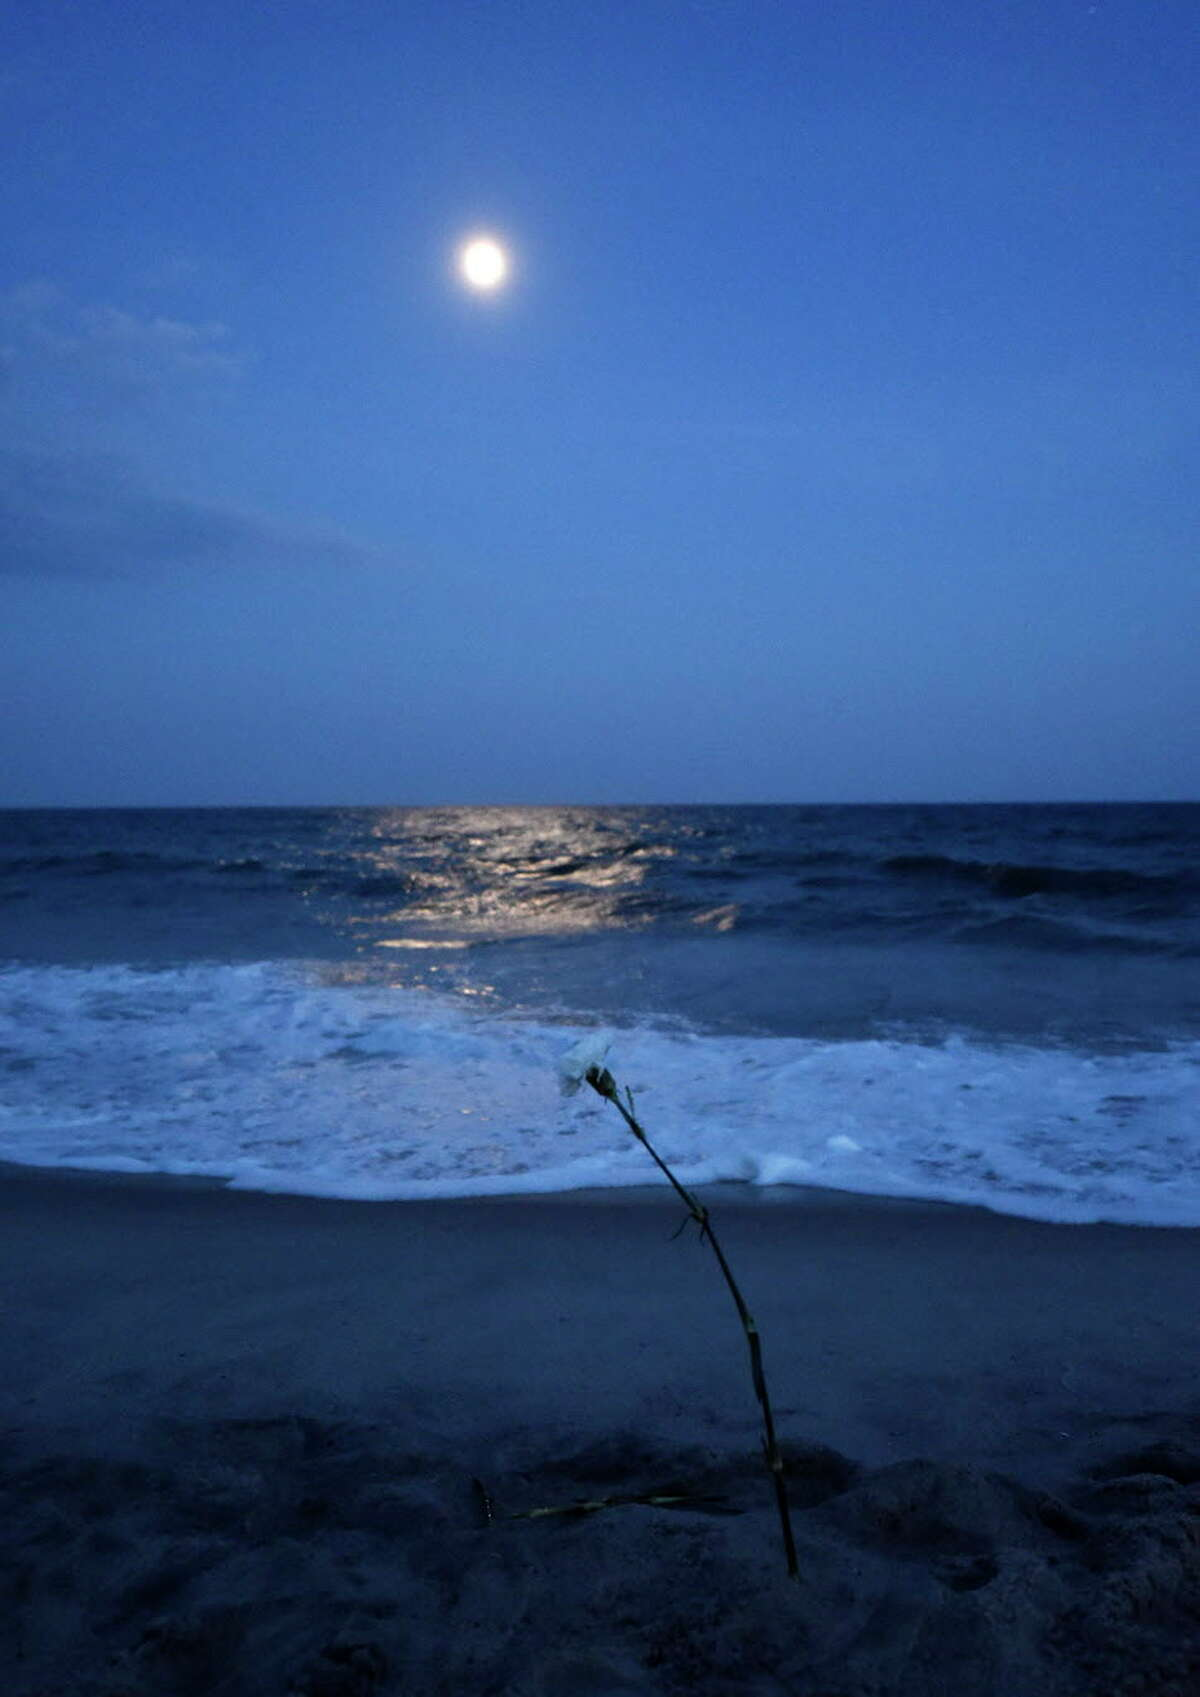 Moonlight over the Atlantic Ocean lights a single rose planted in the sand by a mourner after the ceremony for the 20th anniversary of the TWA Flight 800 plane crash at Smith Point County Park on Sunday, July 17, 2016, in Shirley, N.Y. Families and friends of some of the 230 people killed when a Paris-bound TWA flight 800 jet exploded in the sky off the Long Island coast commemorated the 20th anniversary of the crash that took place on July 17, 1996. (AP Photo/Kathy Kmonicek) ORG XMIT: NYKK113